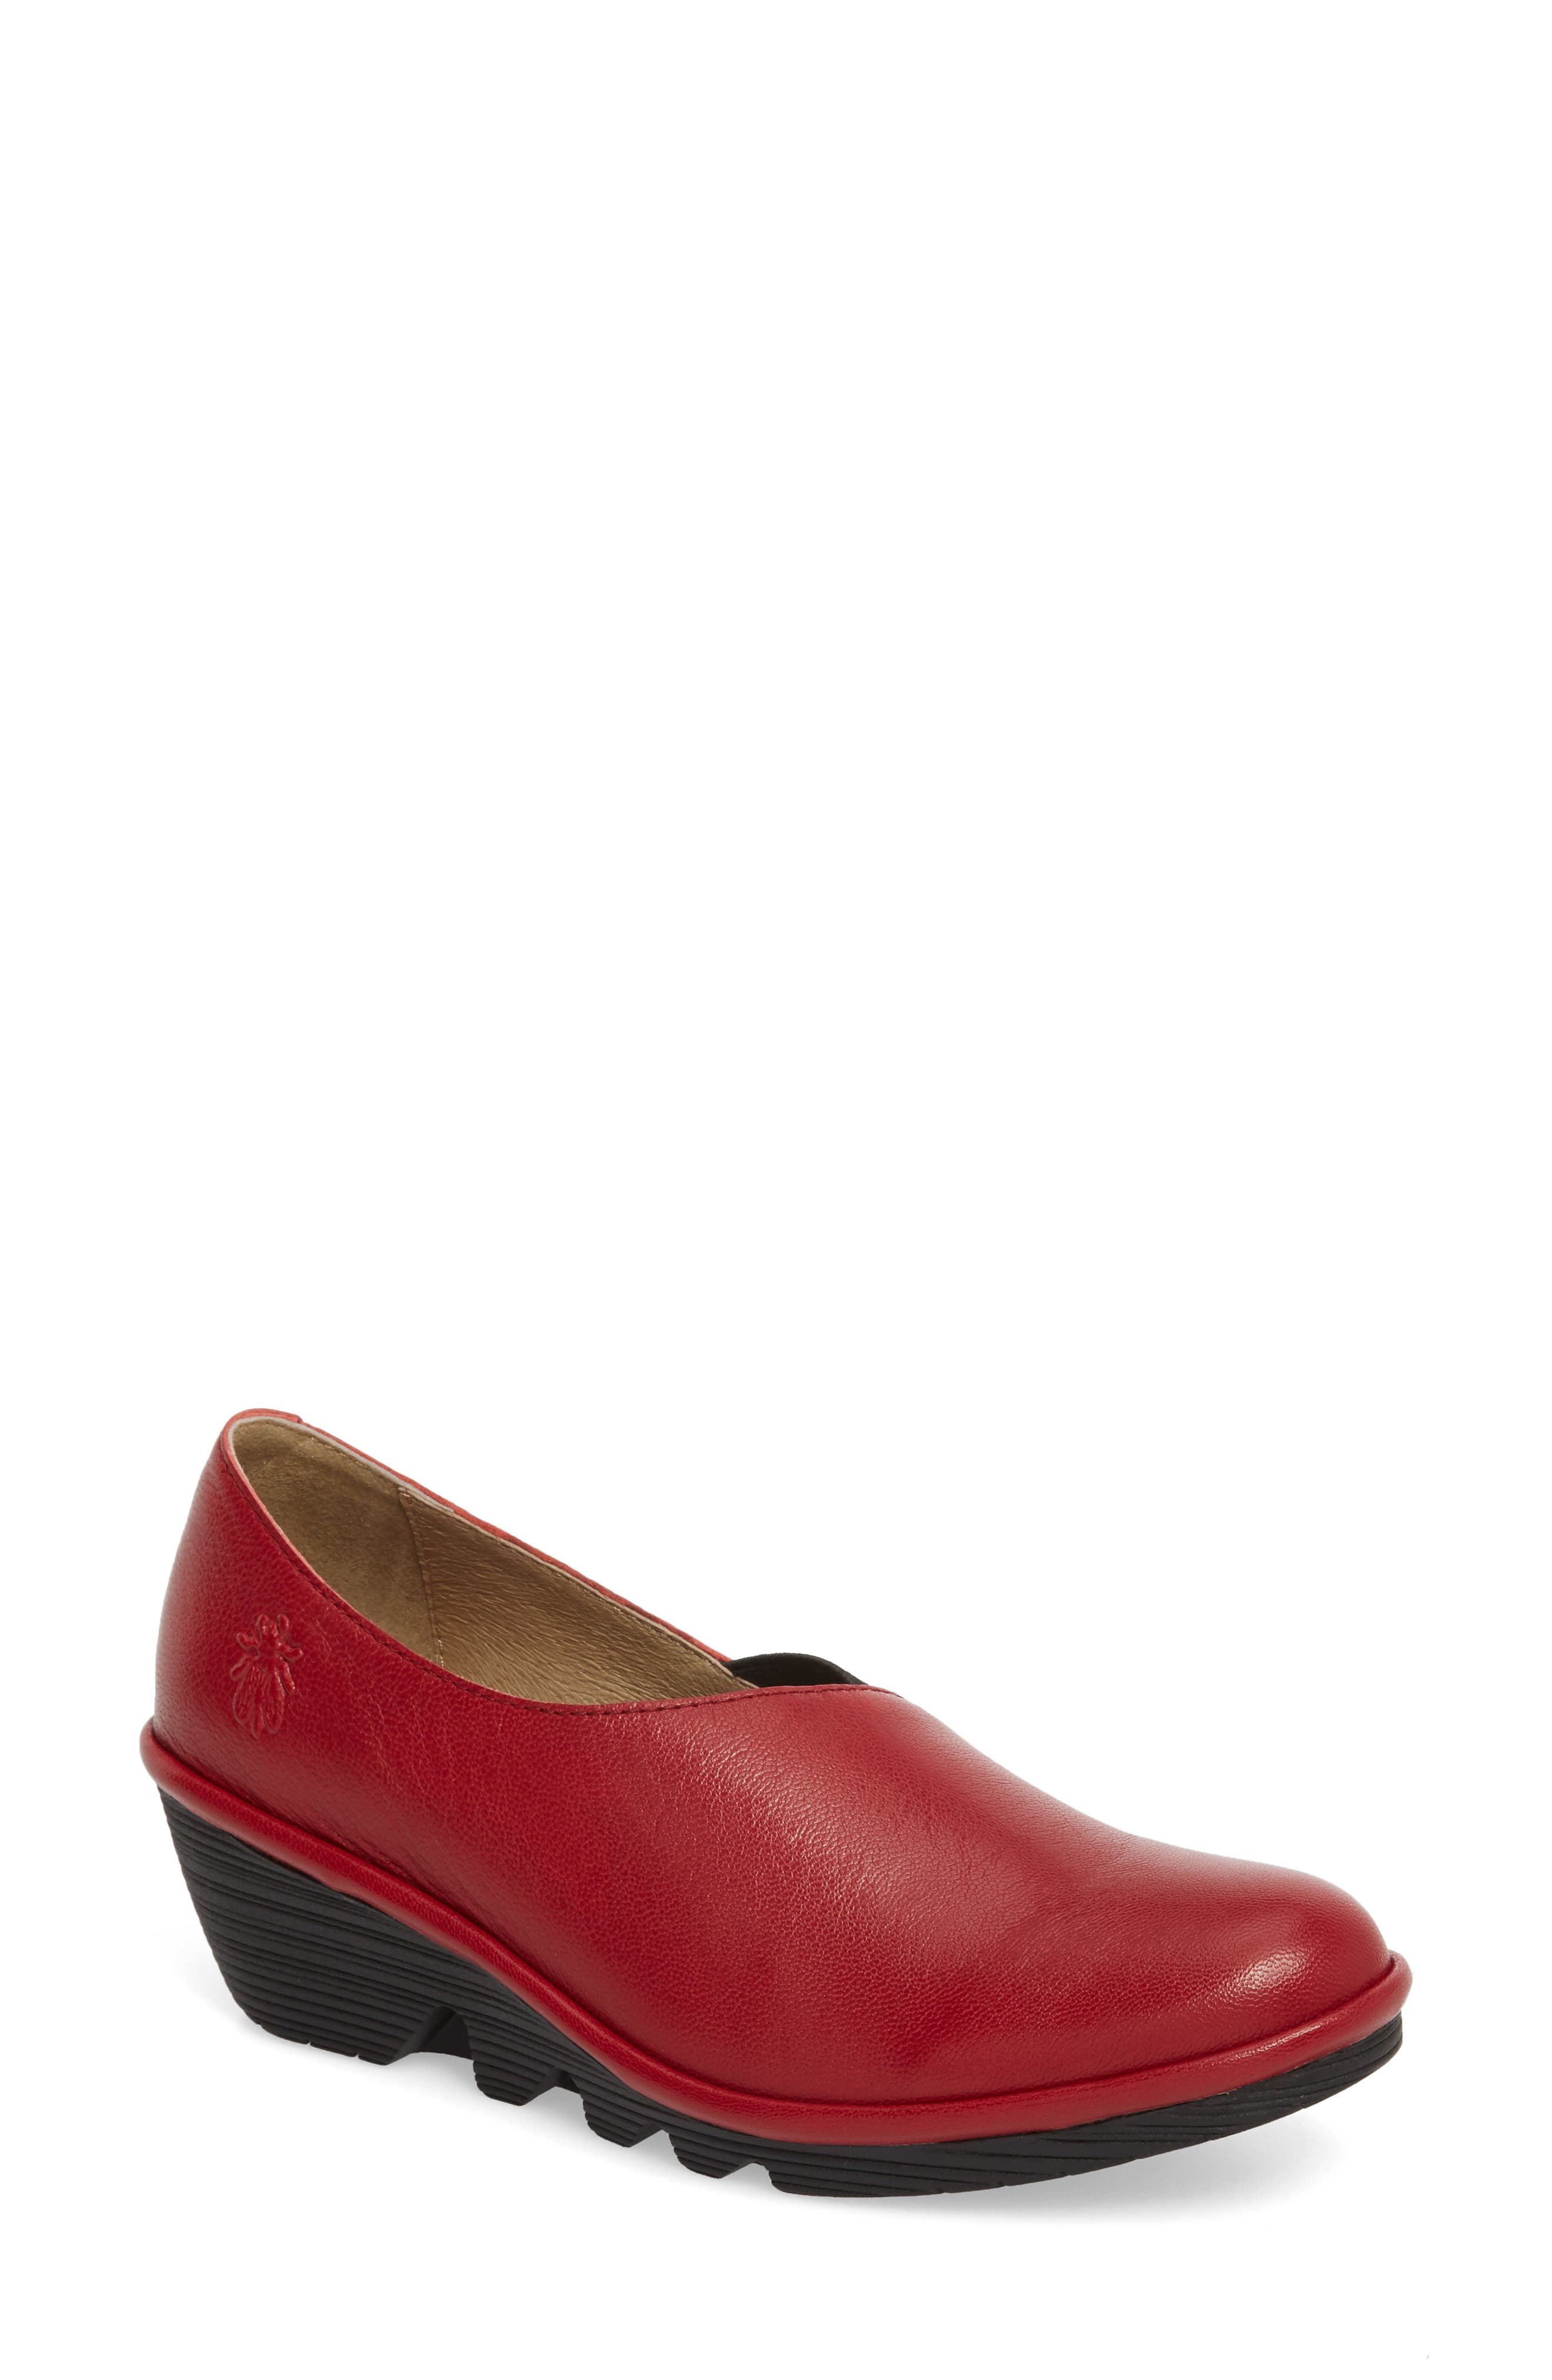 Fly London Peso Wedge - Red